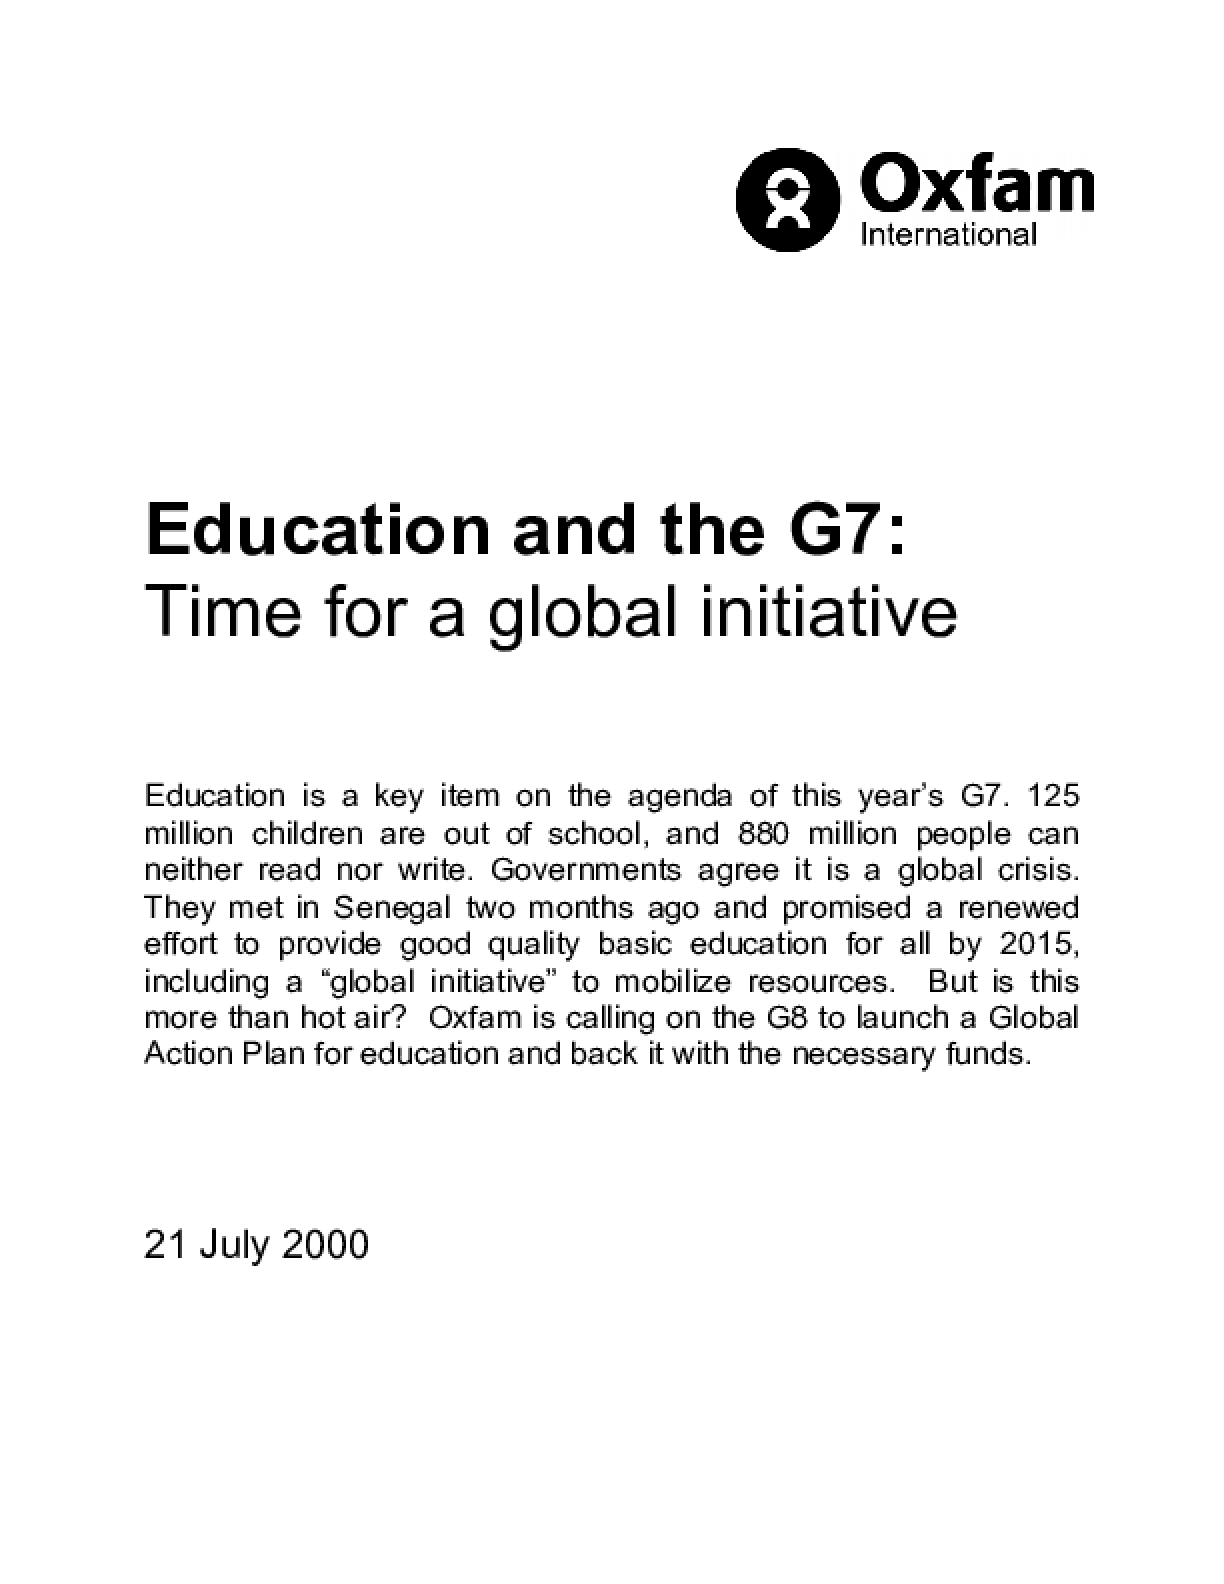 Education and the G7: Time for a global initiative